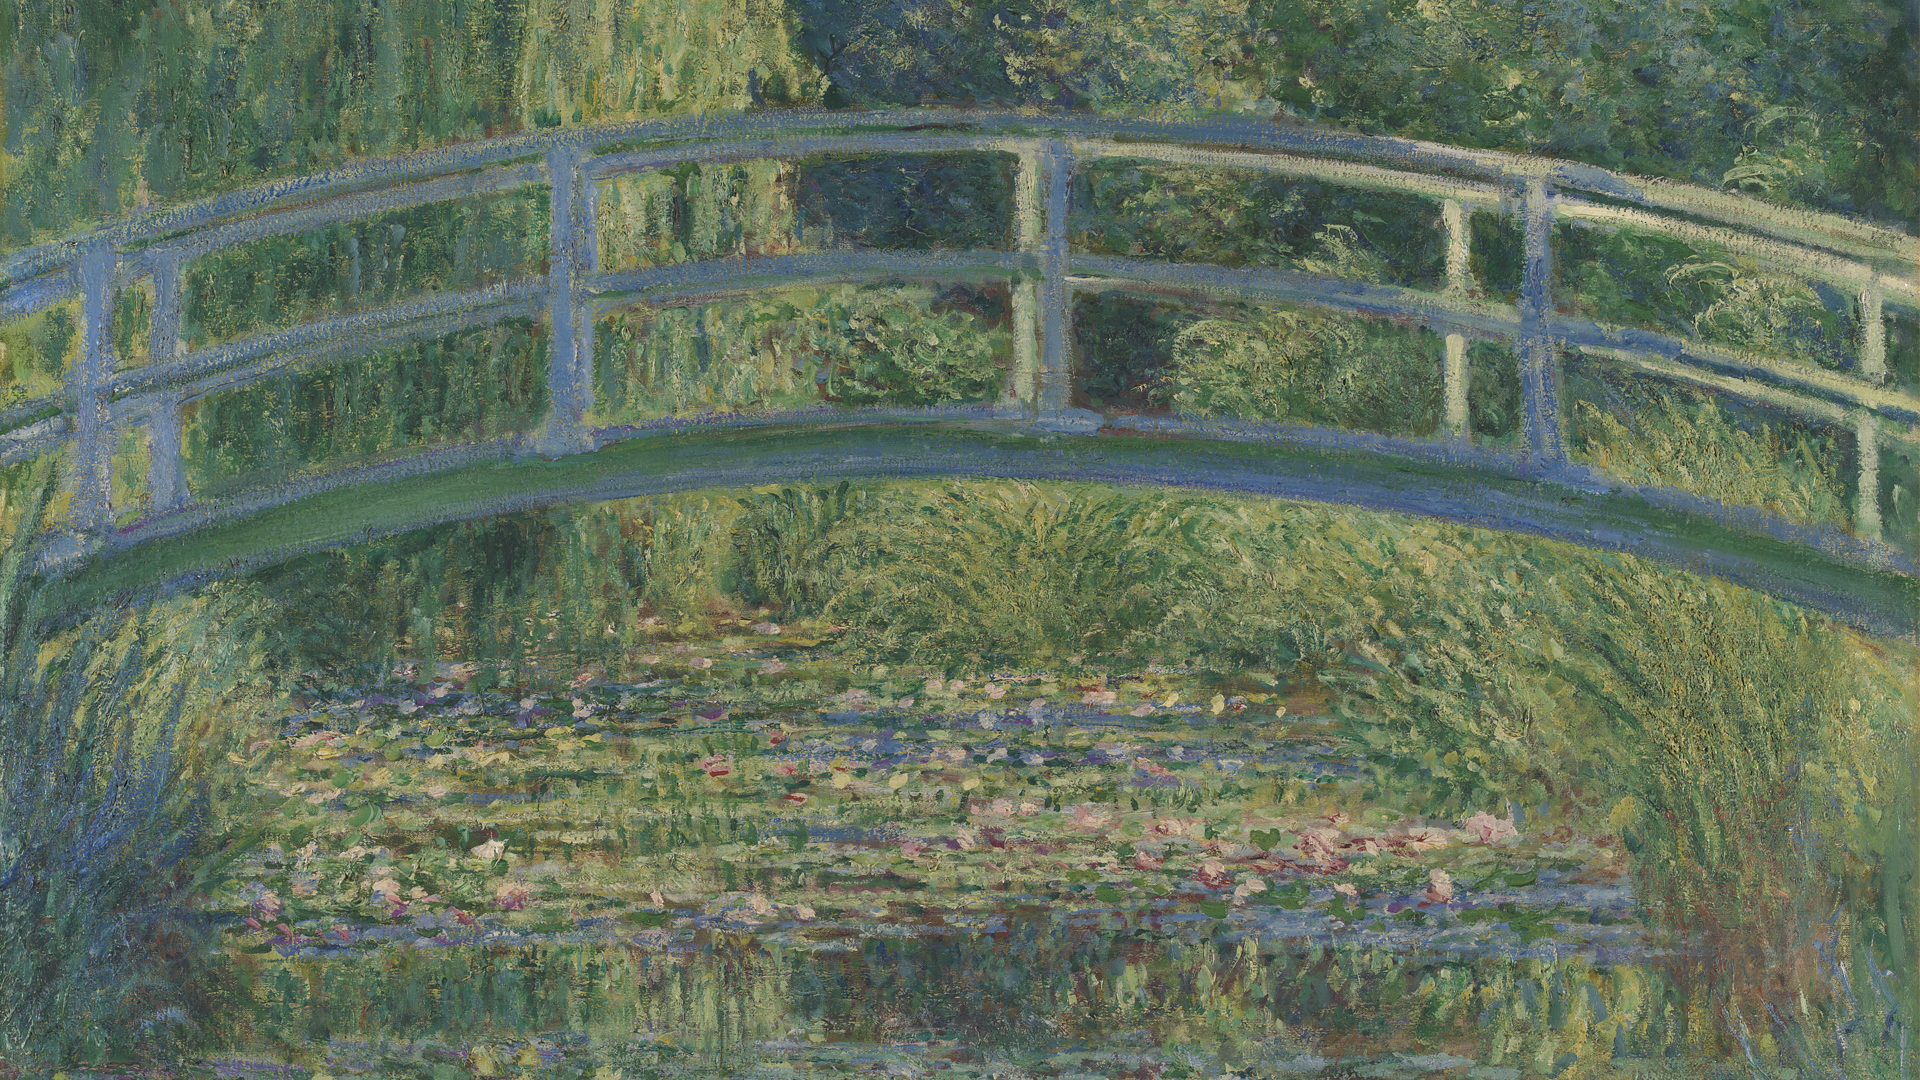 NG4240 - Claude Monet. The Water-Lily Pond. 1899. © The National Gallery, London